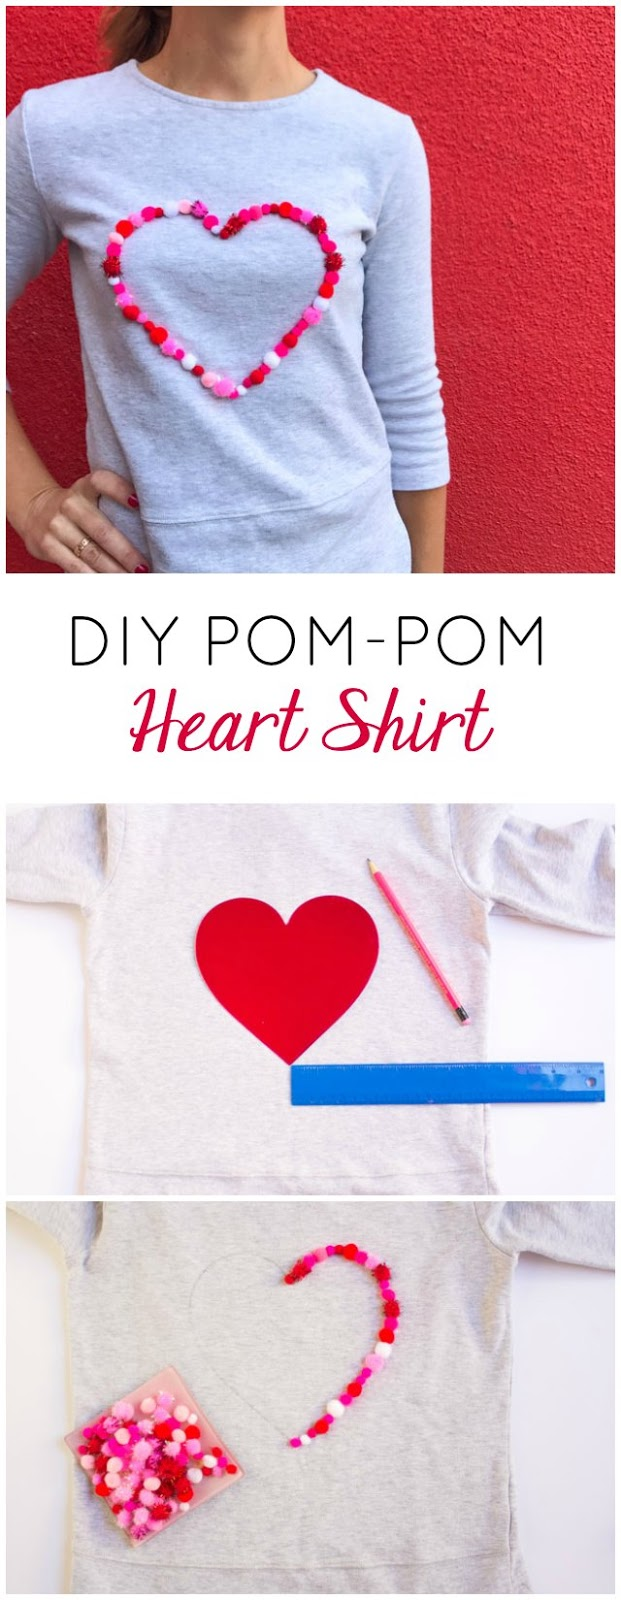 Make this no-sew heart shirt for Valentine's Day - or any day!